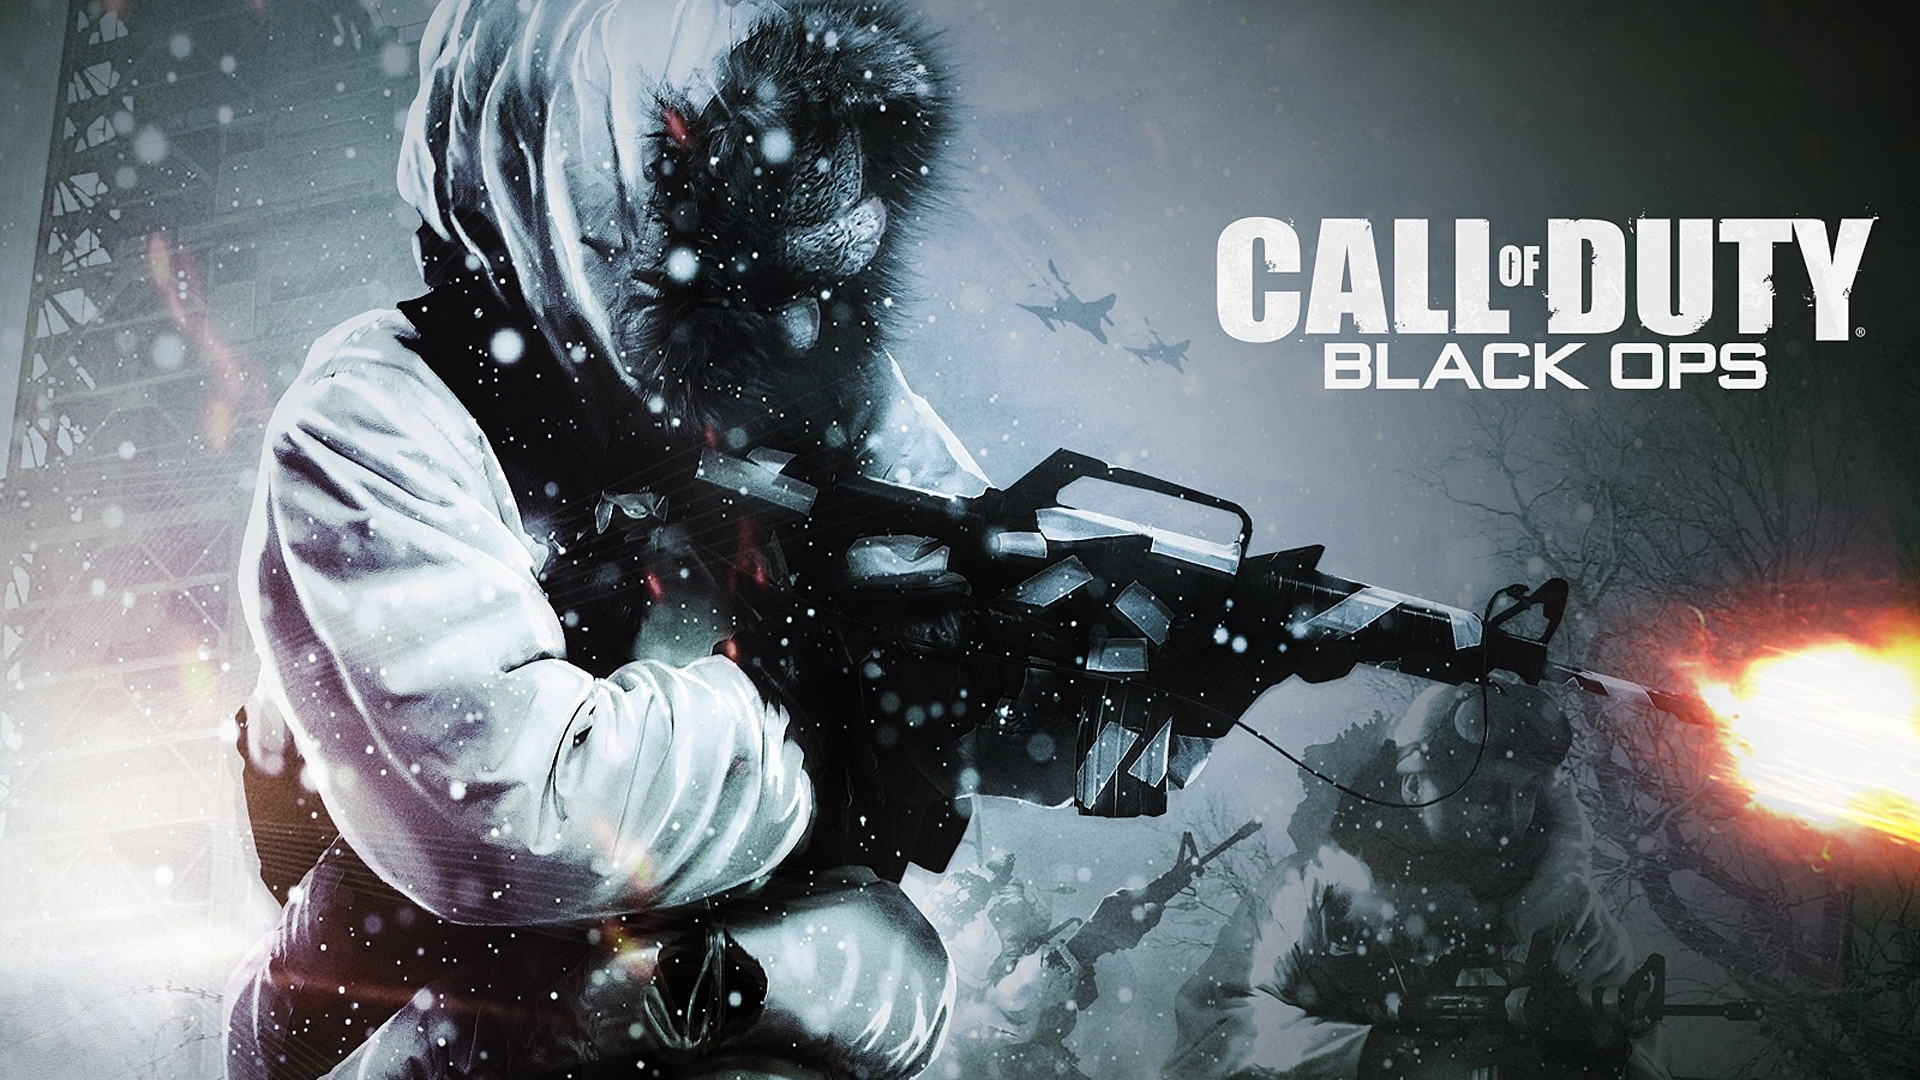 Wallpaper Call Of Duty Black Ops 1920x1200 HD Picture, Image